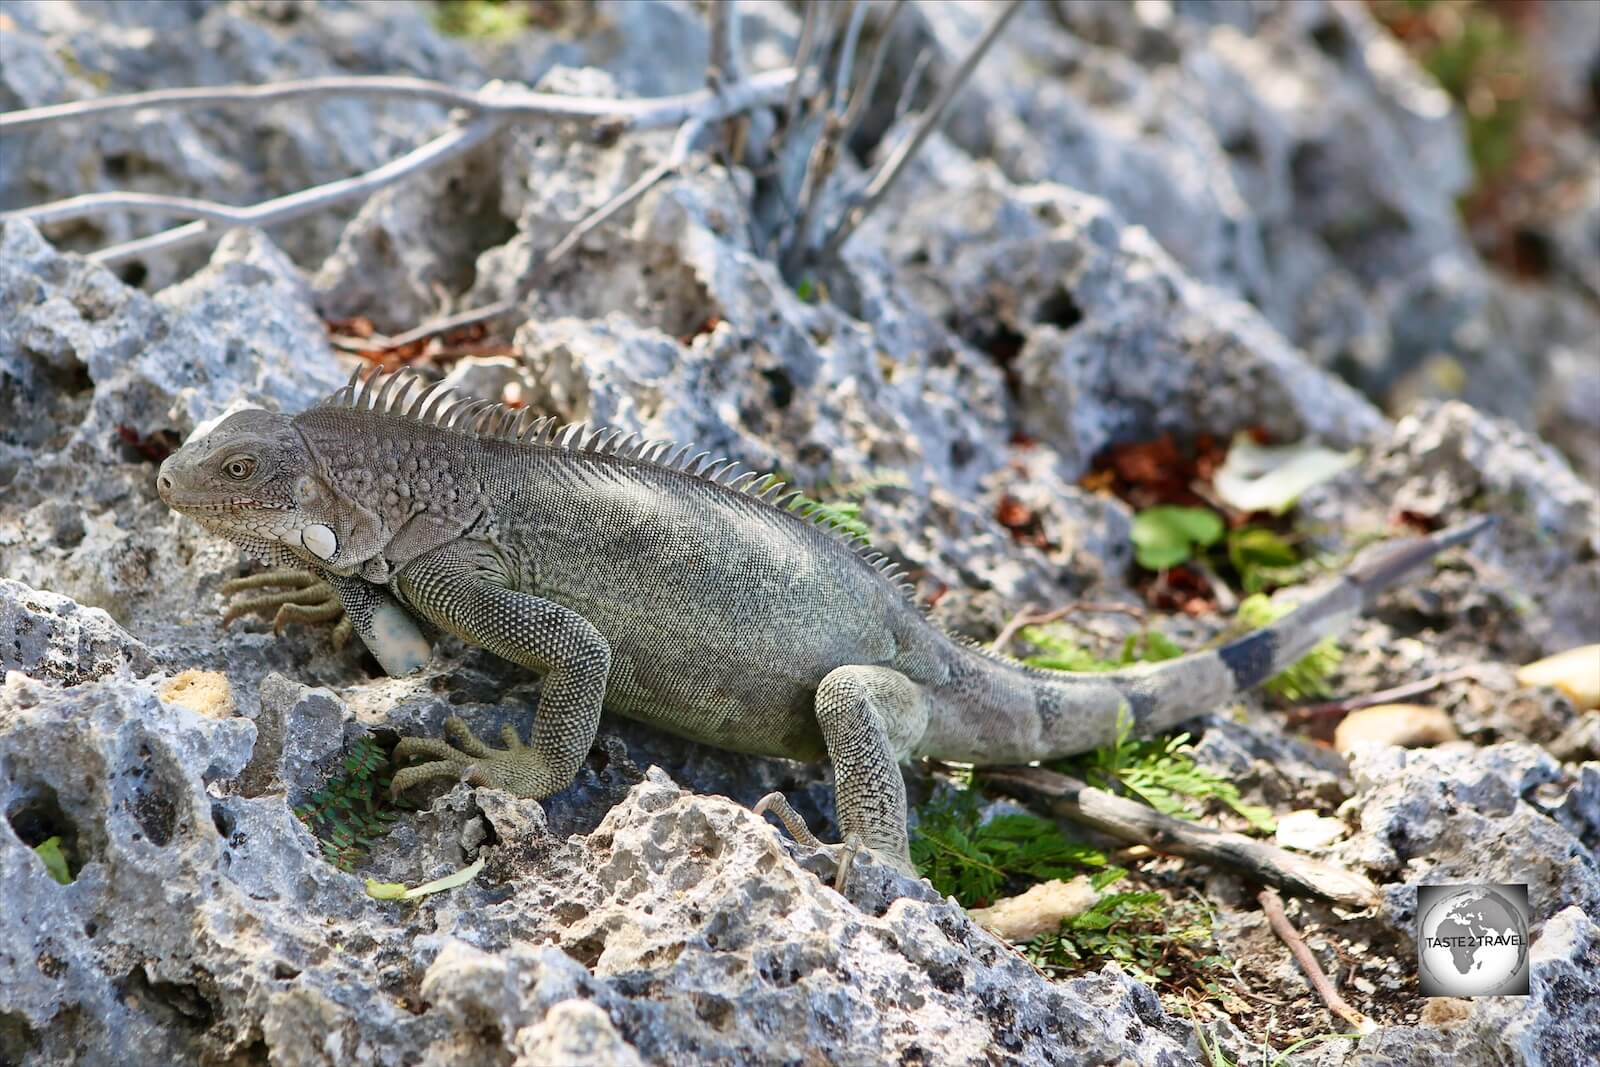 Introduced to the island, the Green Iguana is a common sight on Bonaire and is featured in local cuisine.